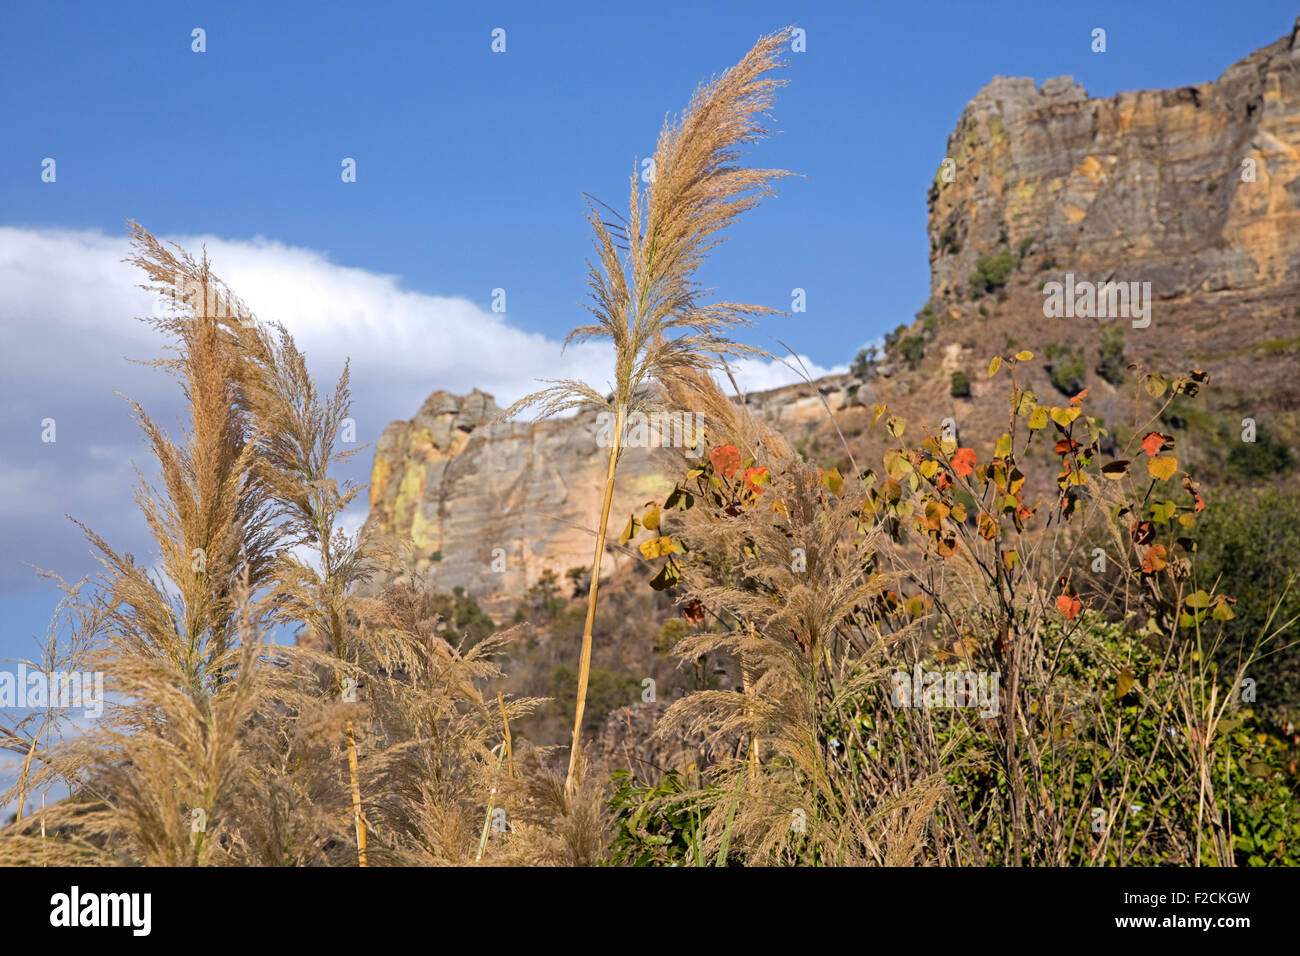 Eroded sandstone rock formations and tall grass in the Isalo National Park near Ranohira, Ihosy, Ihorombe, Madagascar, - Stock Image